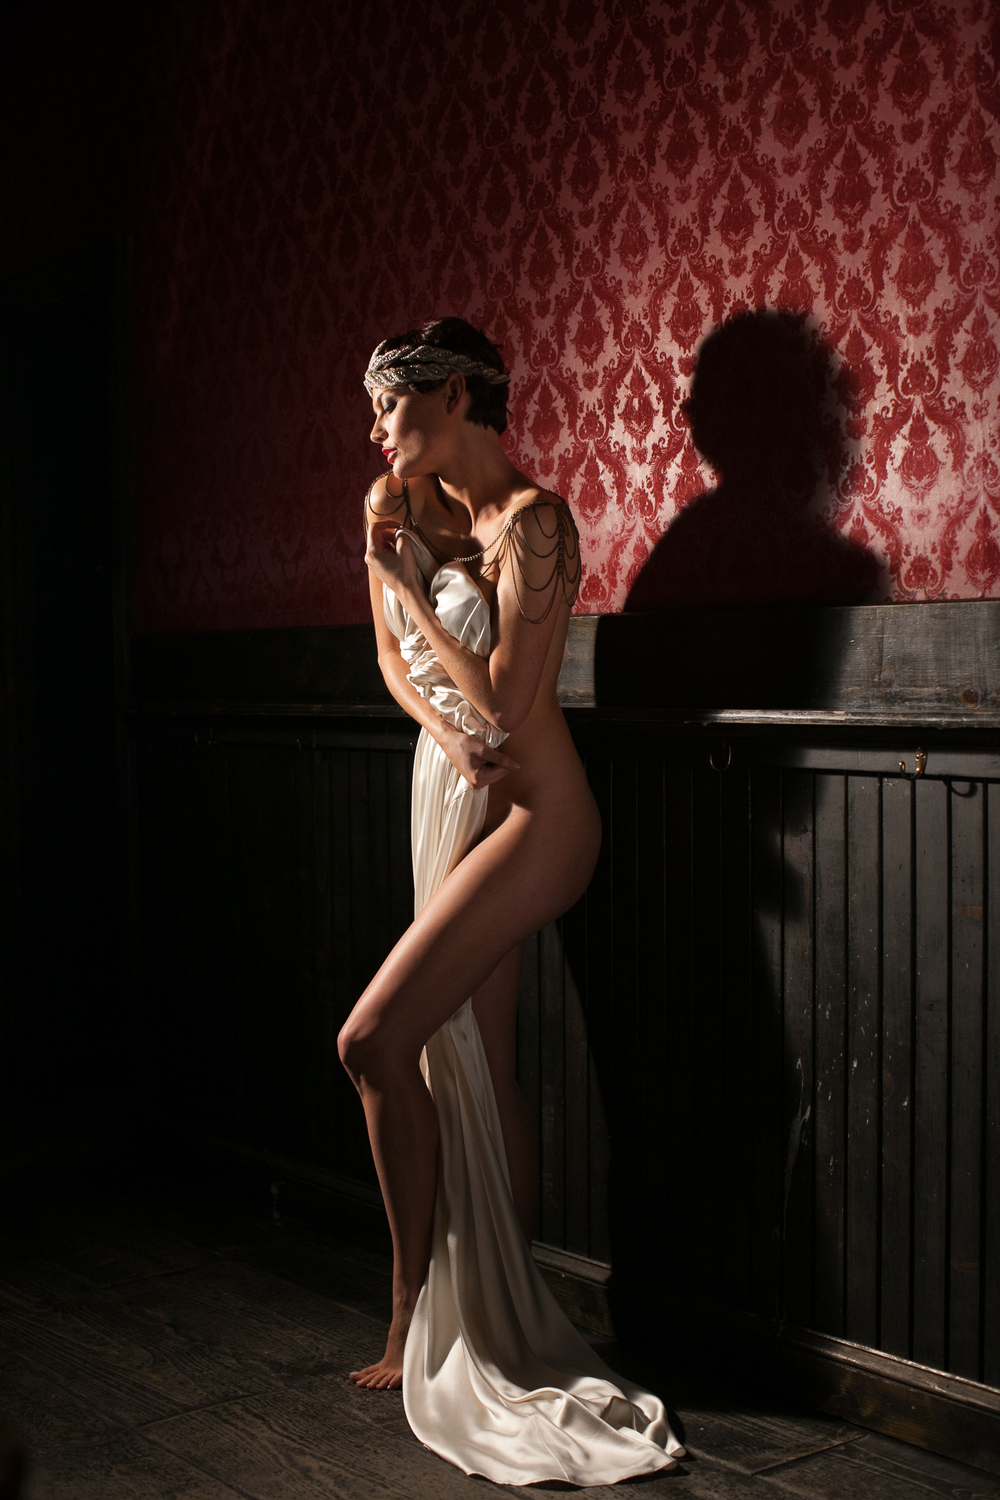 Inspired by fashion and raw expression, Jennifer Skog's boudoir photography evokes realism, seduction and the unexpected. Available Worldwide.  www.jenniferskogboudoir.com